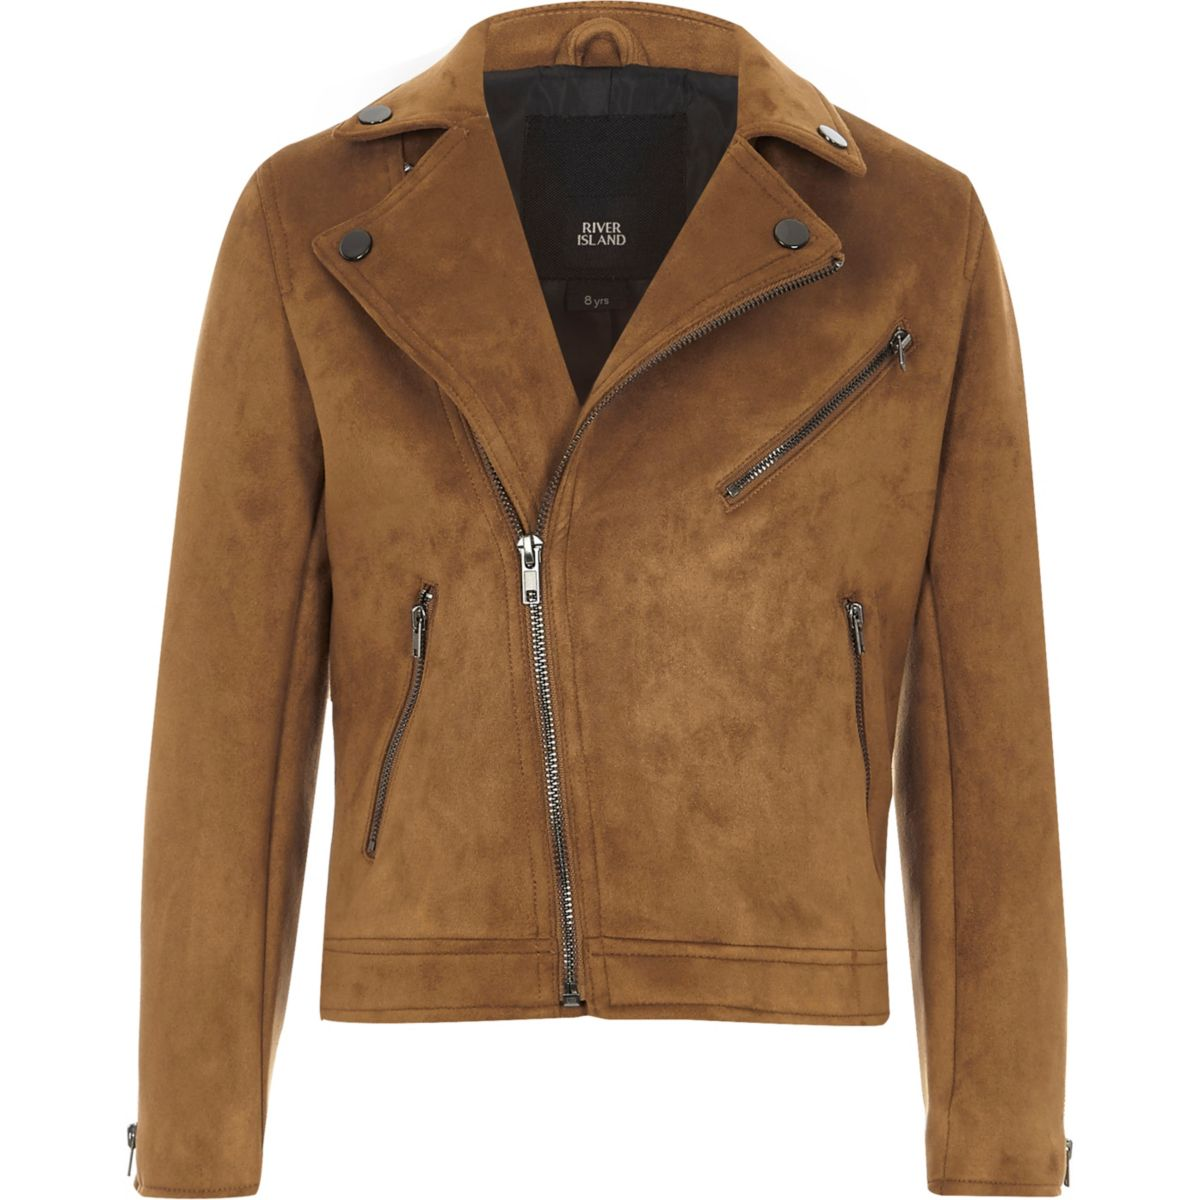 Suede Jackets. When the air turns crisp and the seasons start to change, suede jackets come into style. For a casual look that remains timeless and classic, this type of .